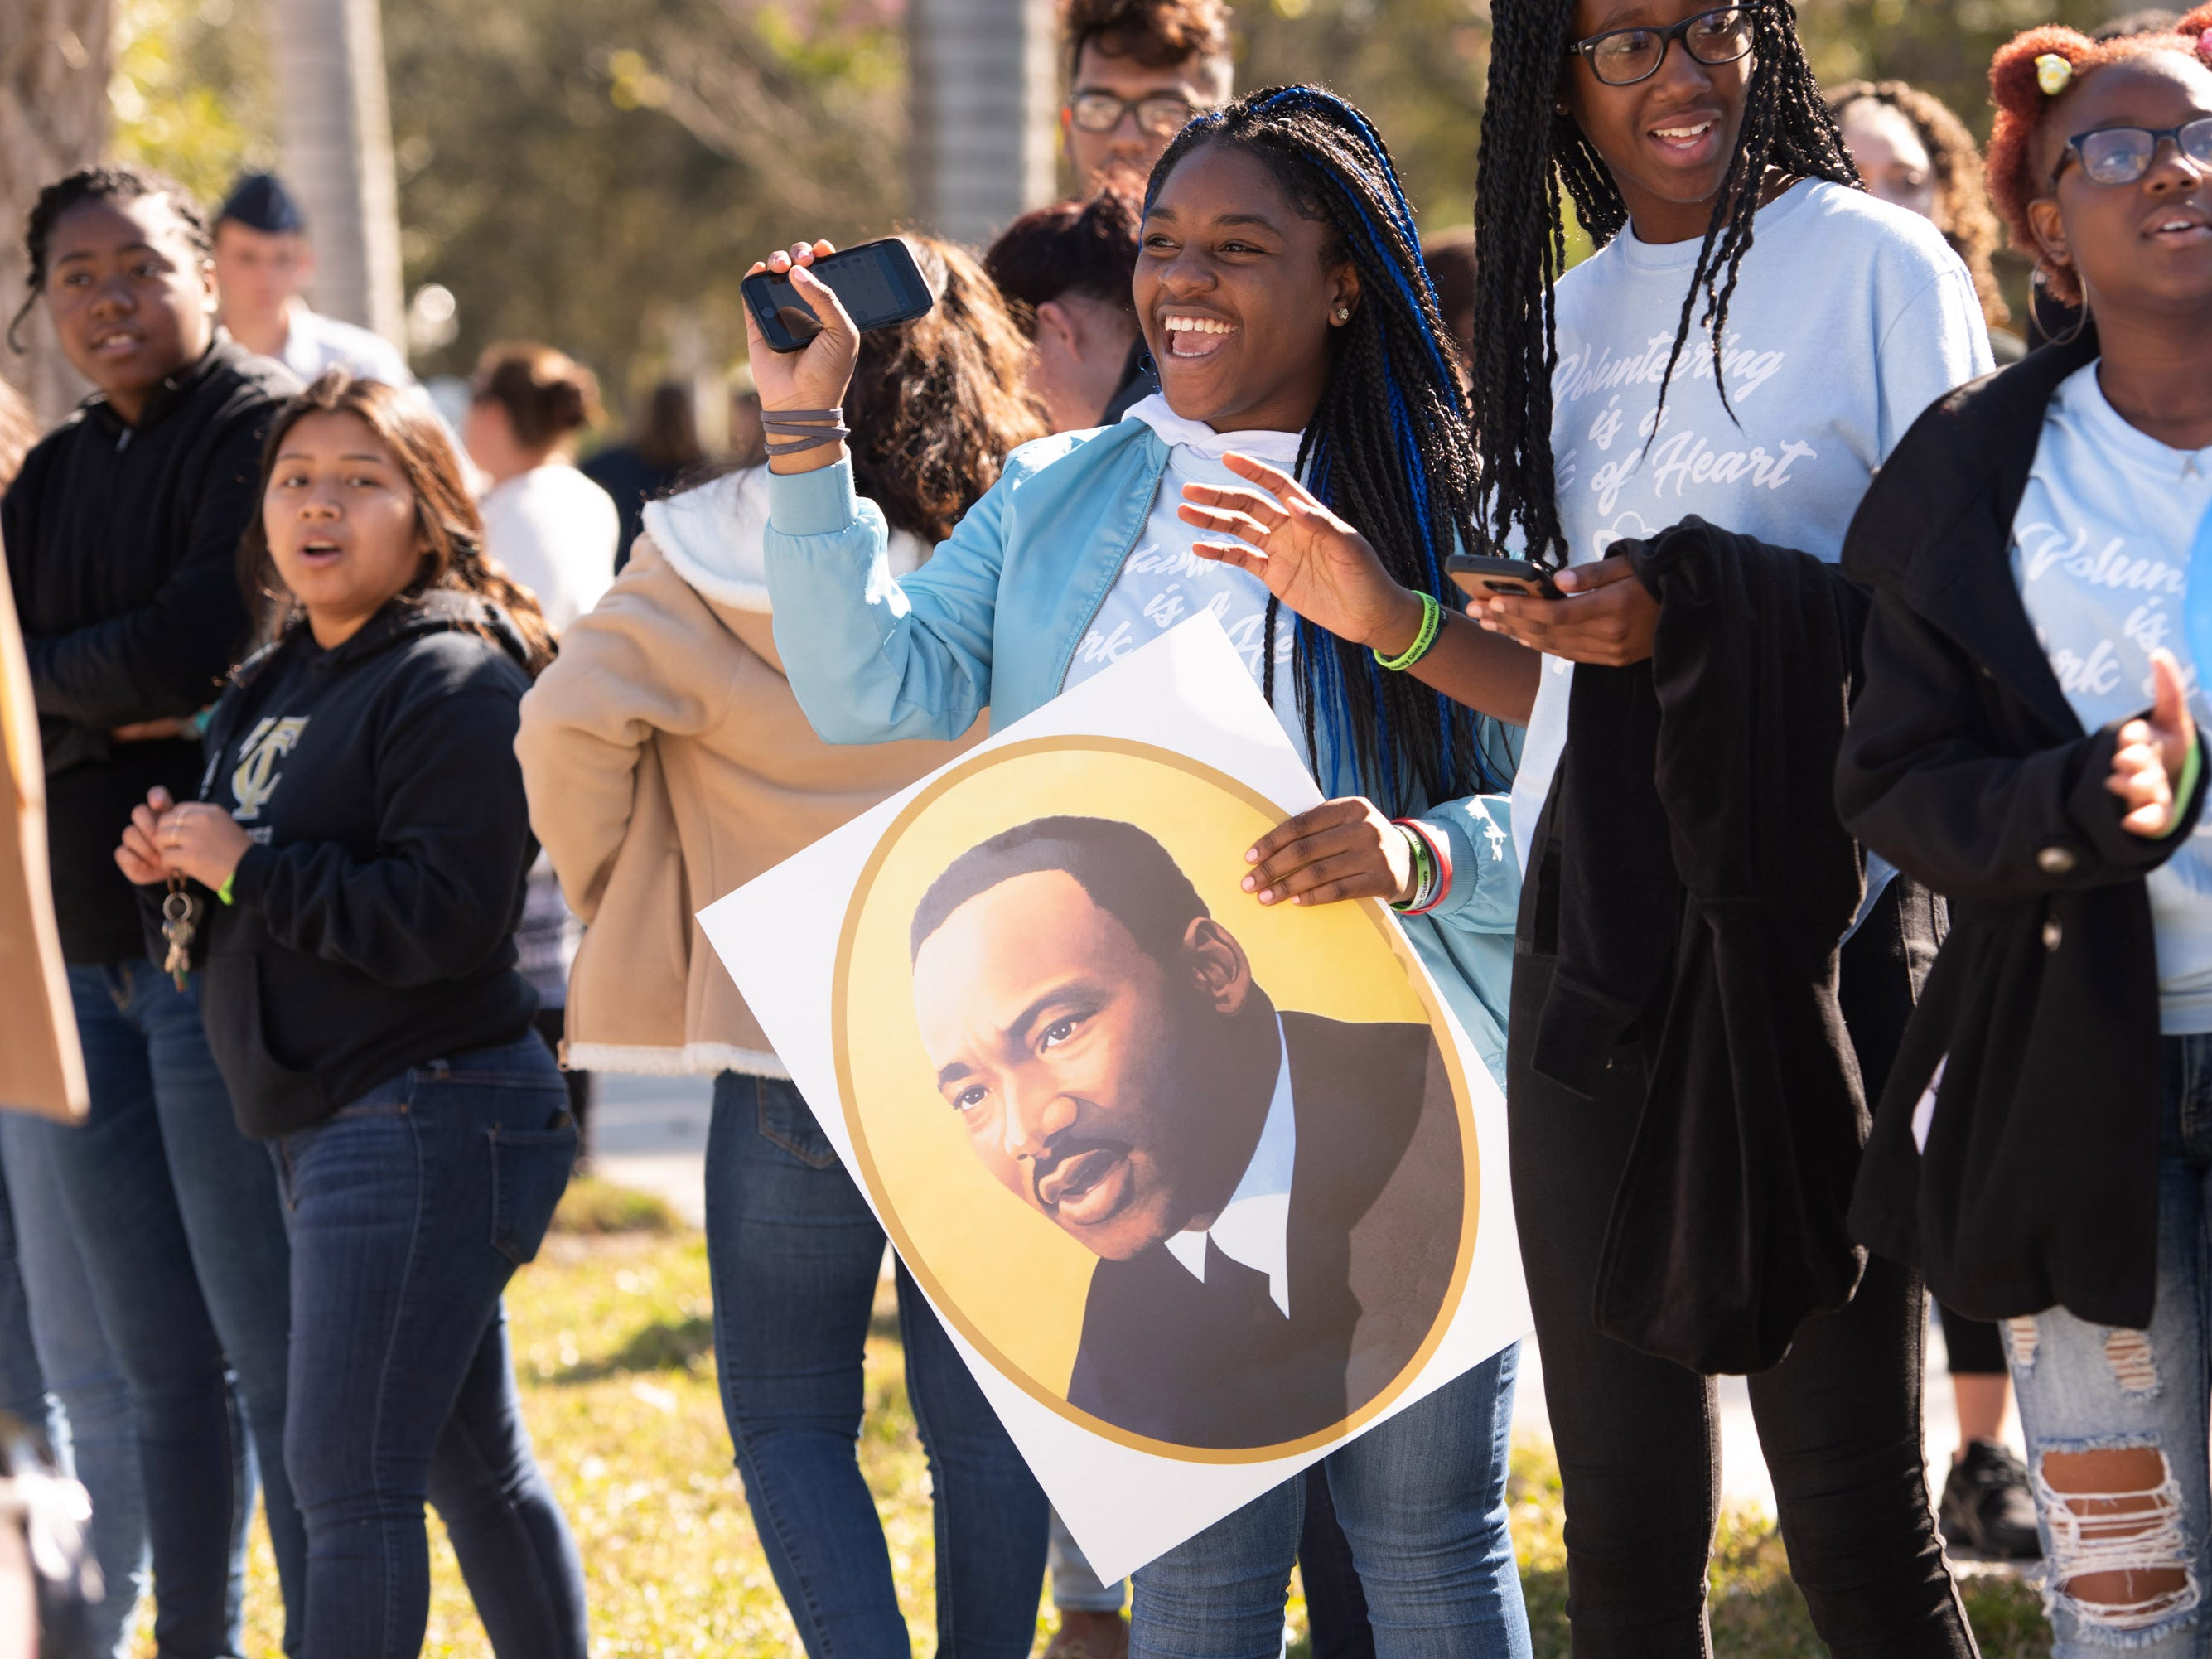 "Leisha Celestin (center), 16, of Port St. Lucie, waves to parade-goers during the Martin Luther King Jr. Day Parade and Celebration along Southeast Martin Luther King Jr. Boulevard on Monday, Jan. 21, 2019, in Stuart. ""Remembering Martin Luther King Jr.'s name is what matters most today,"" Celestin said."